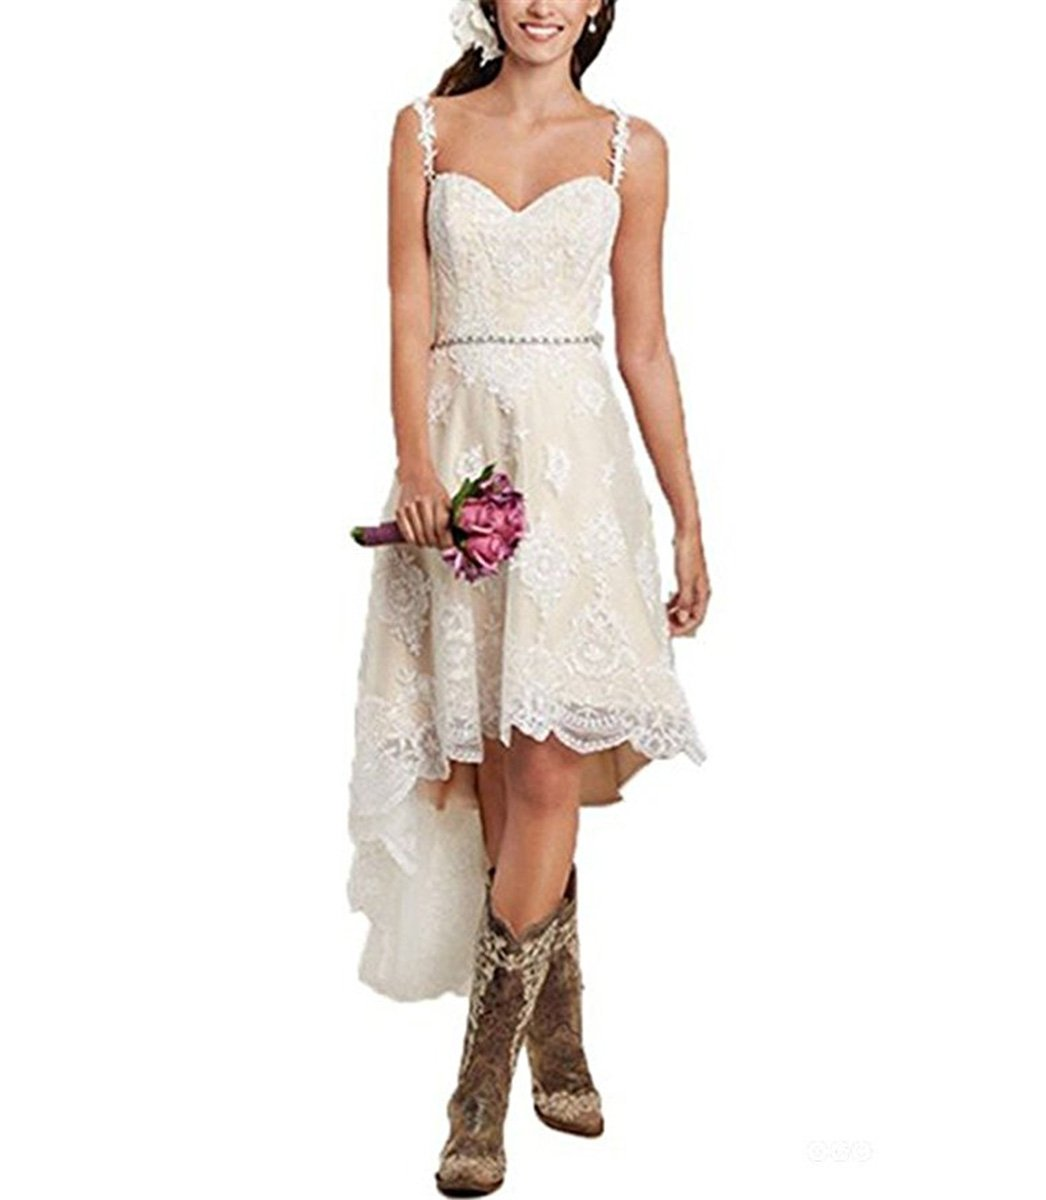 Vweil Rustic High Low Vestido De Novia Lace Wedding Dresses With Detachable Skirt VD23